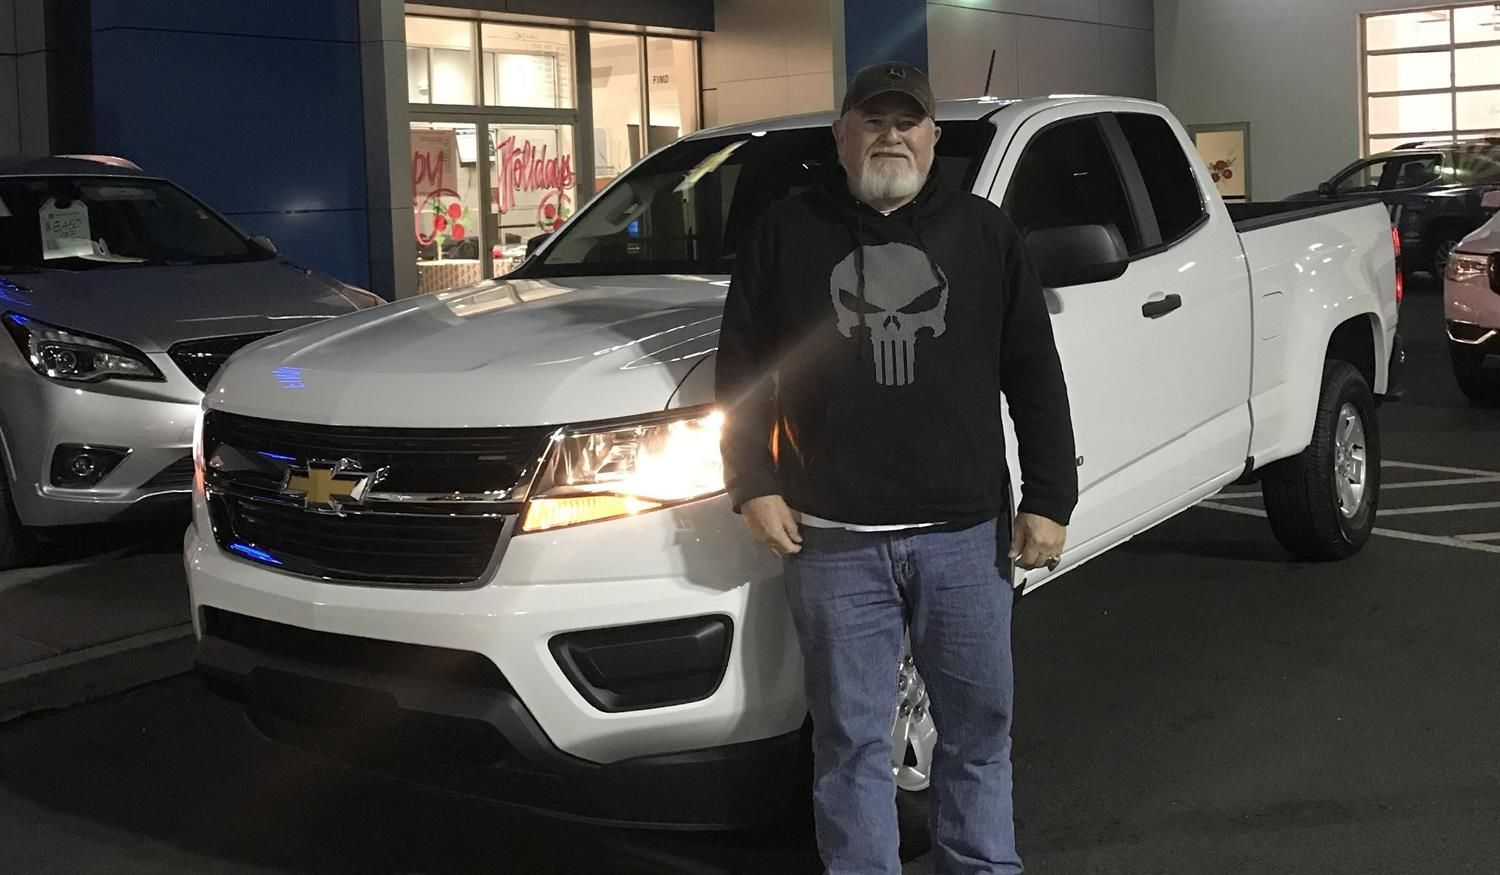 Russell And Joyce We Hope You Enjoy Your New 2019 Chevrolet Colorado Congratulations And Best W Buick Gmc Chevrolet Colorado Congratulations And Best Wishes